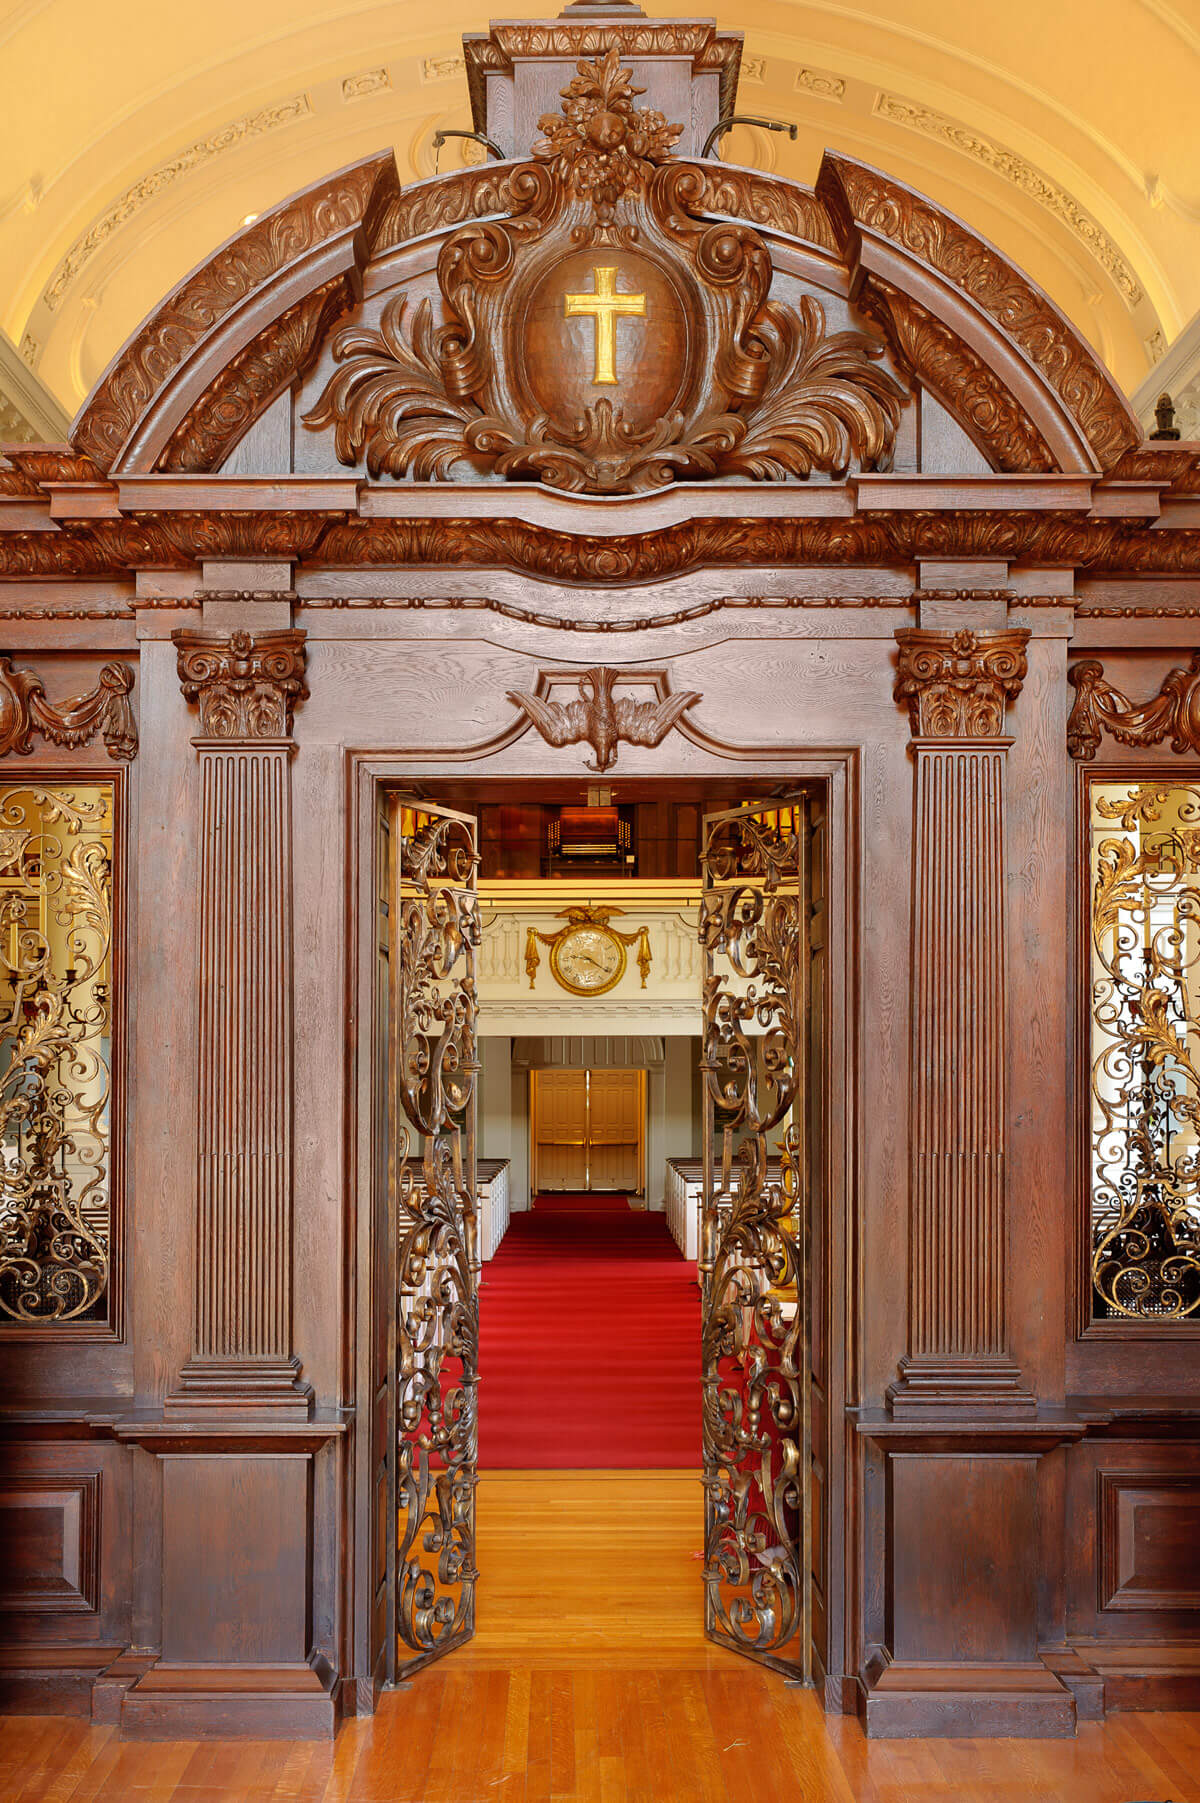 Elaborately carved wooden interior gate with detailed metal door opening onto wooden and red carpet floor.